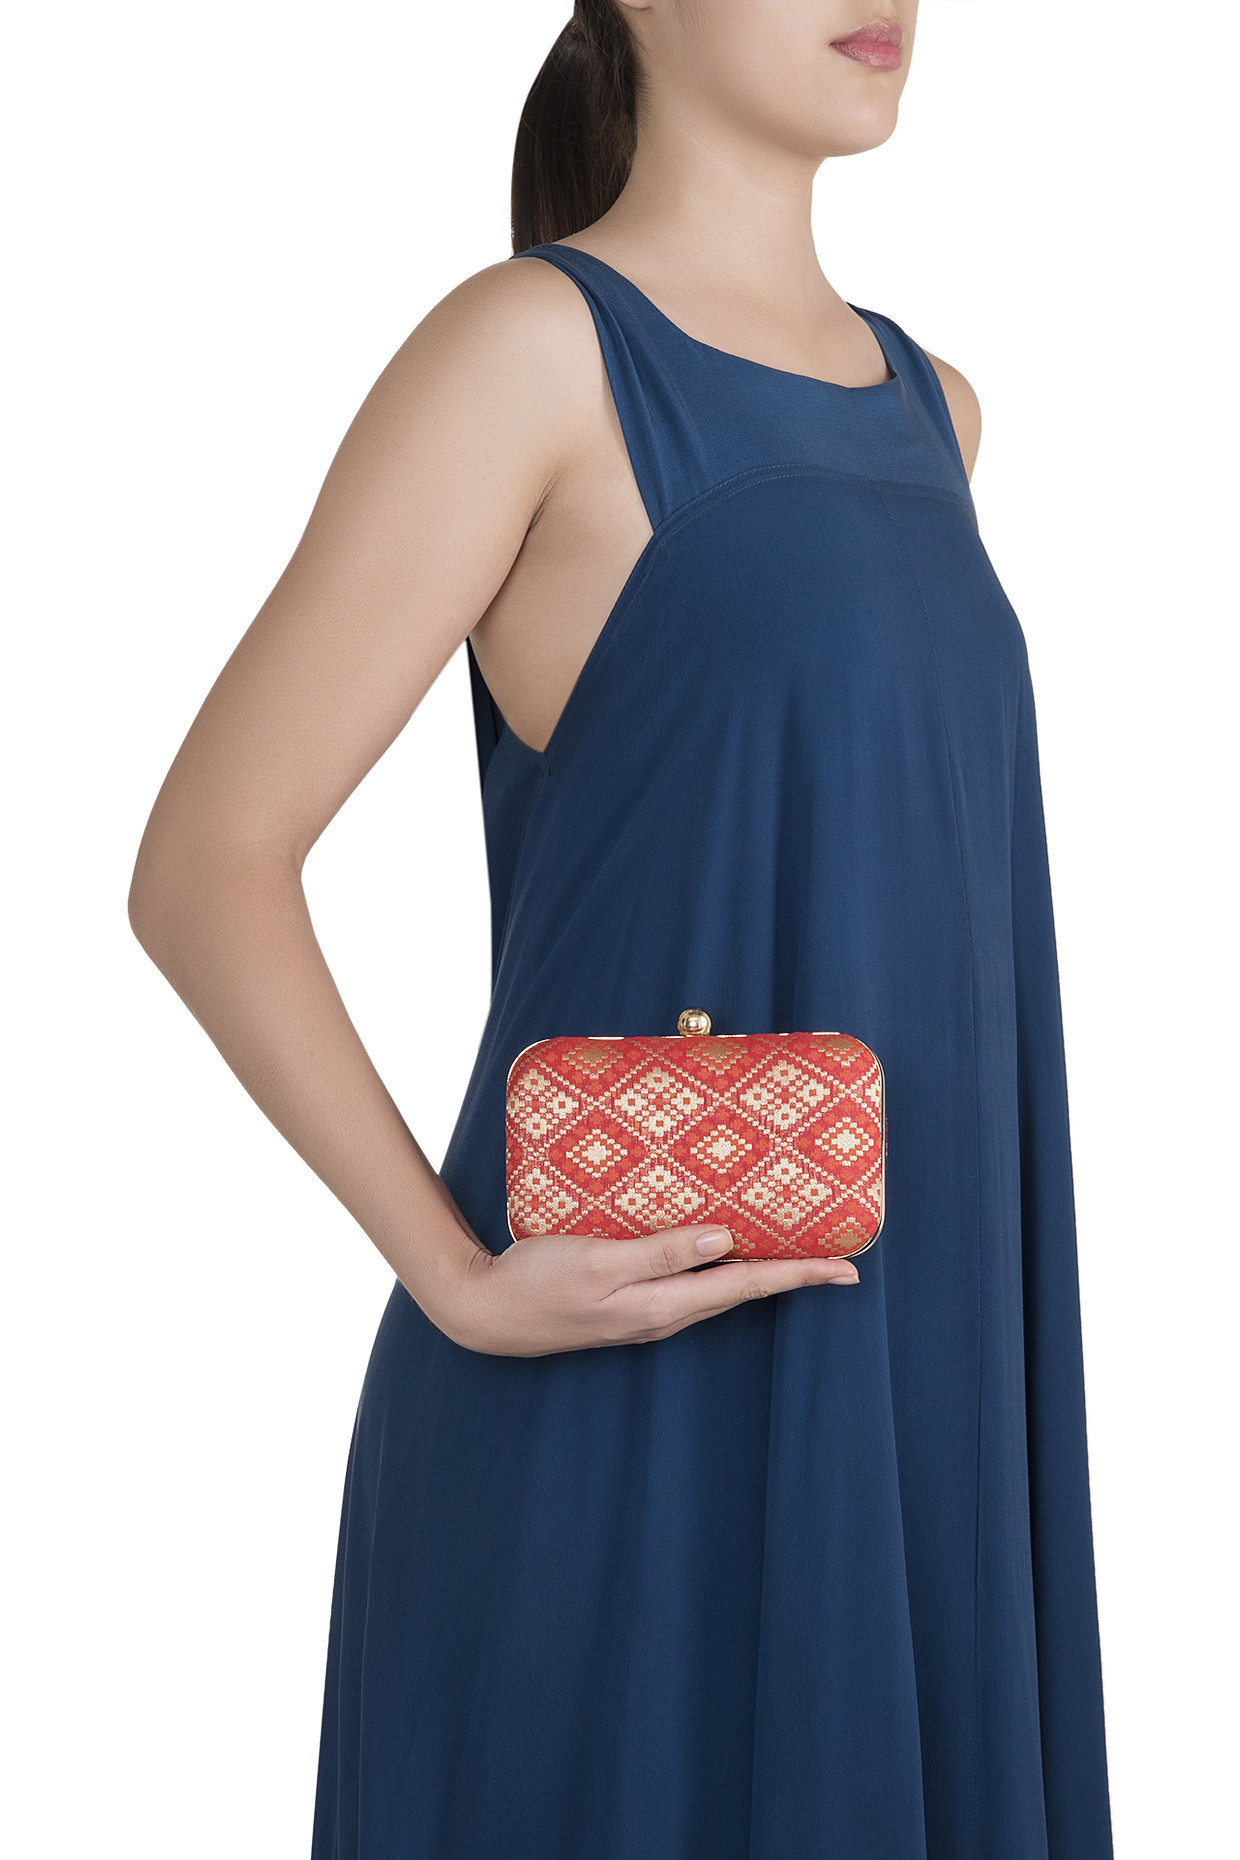 Red Brocade Clutch by Sonnet